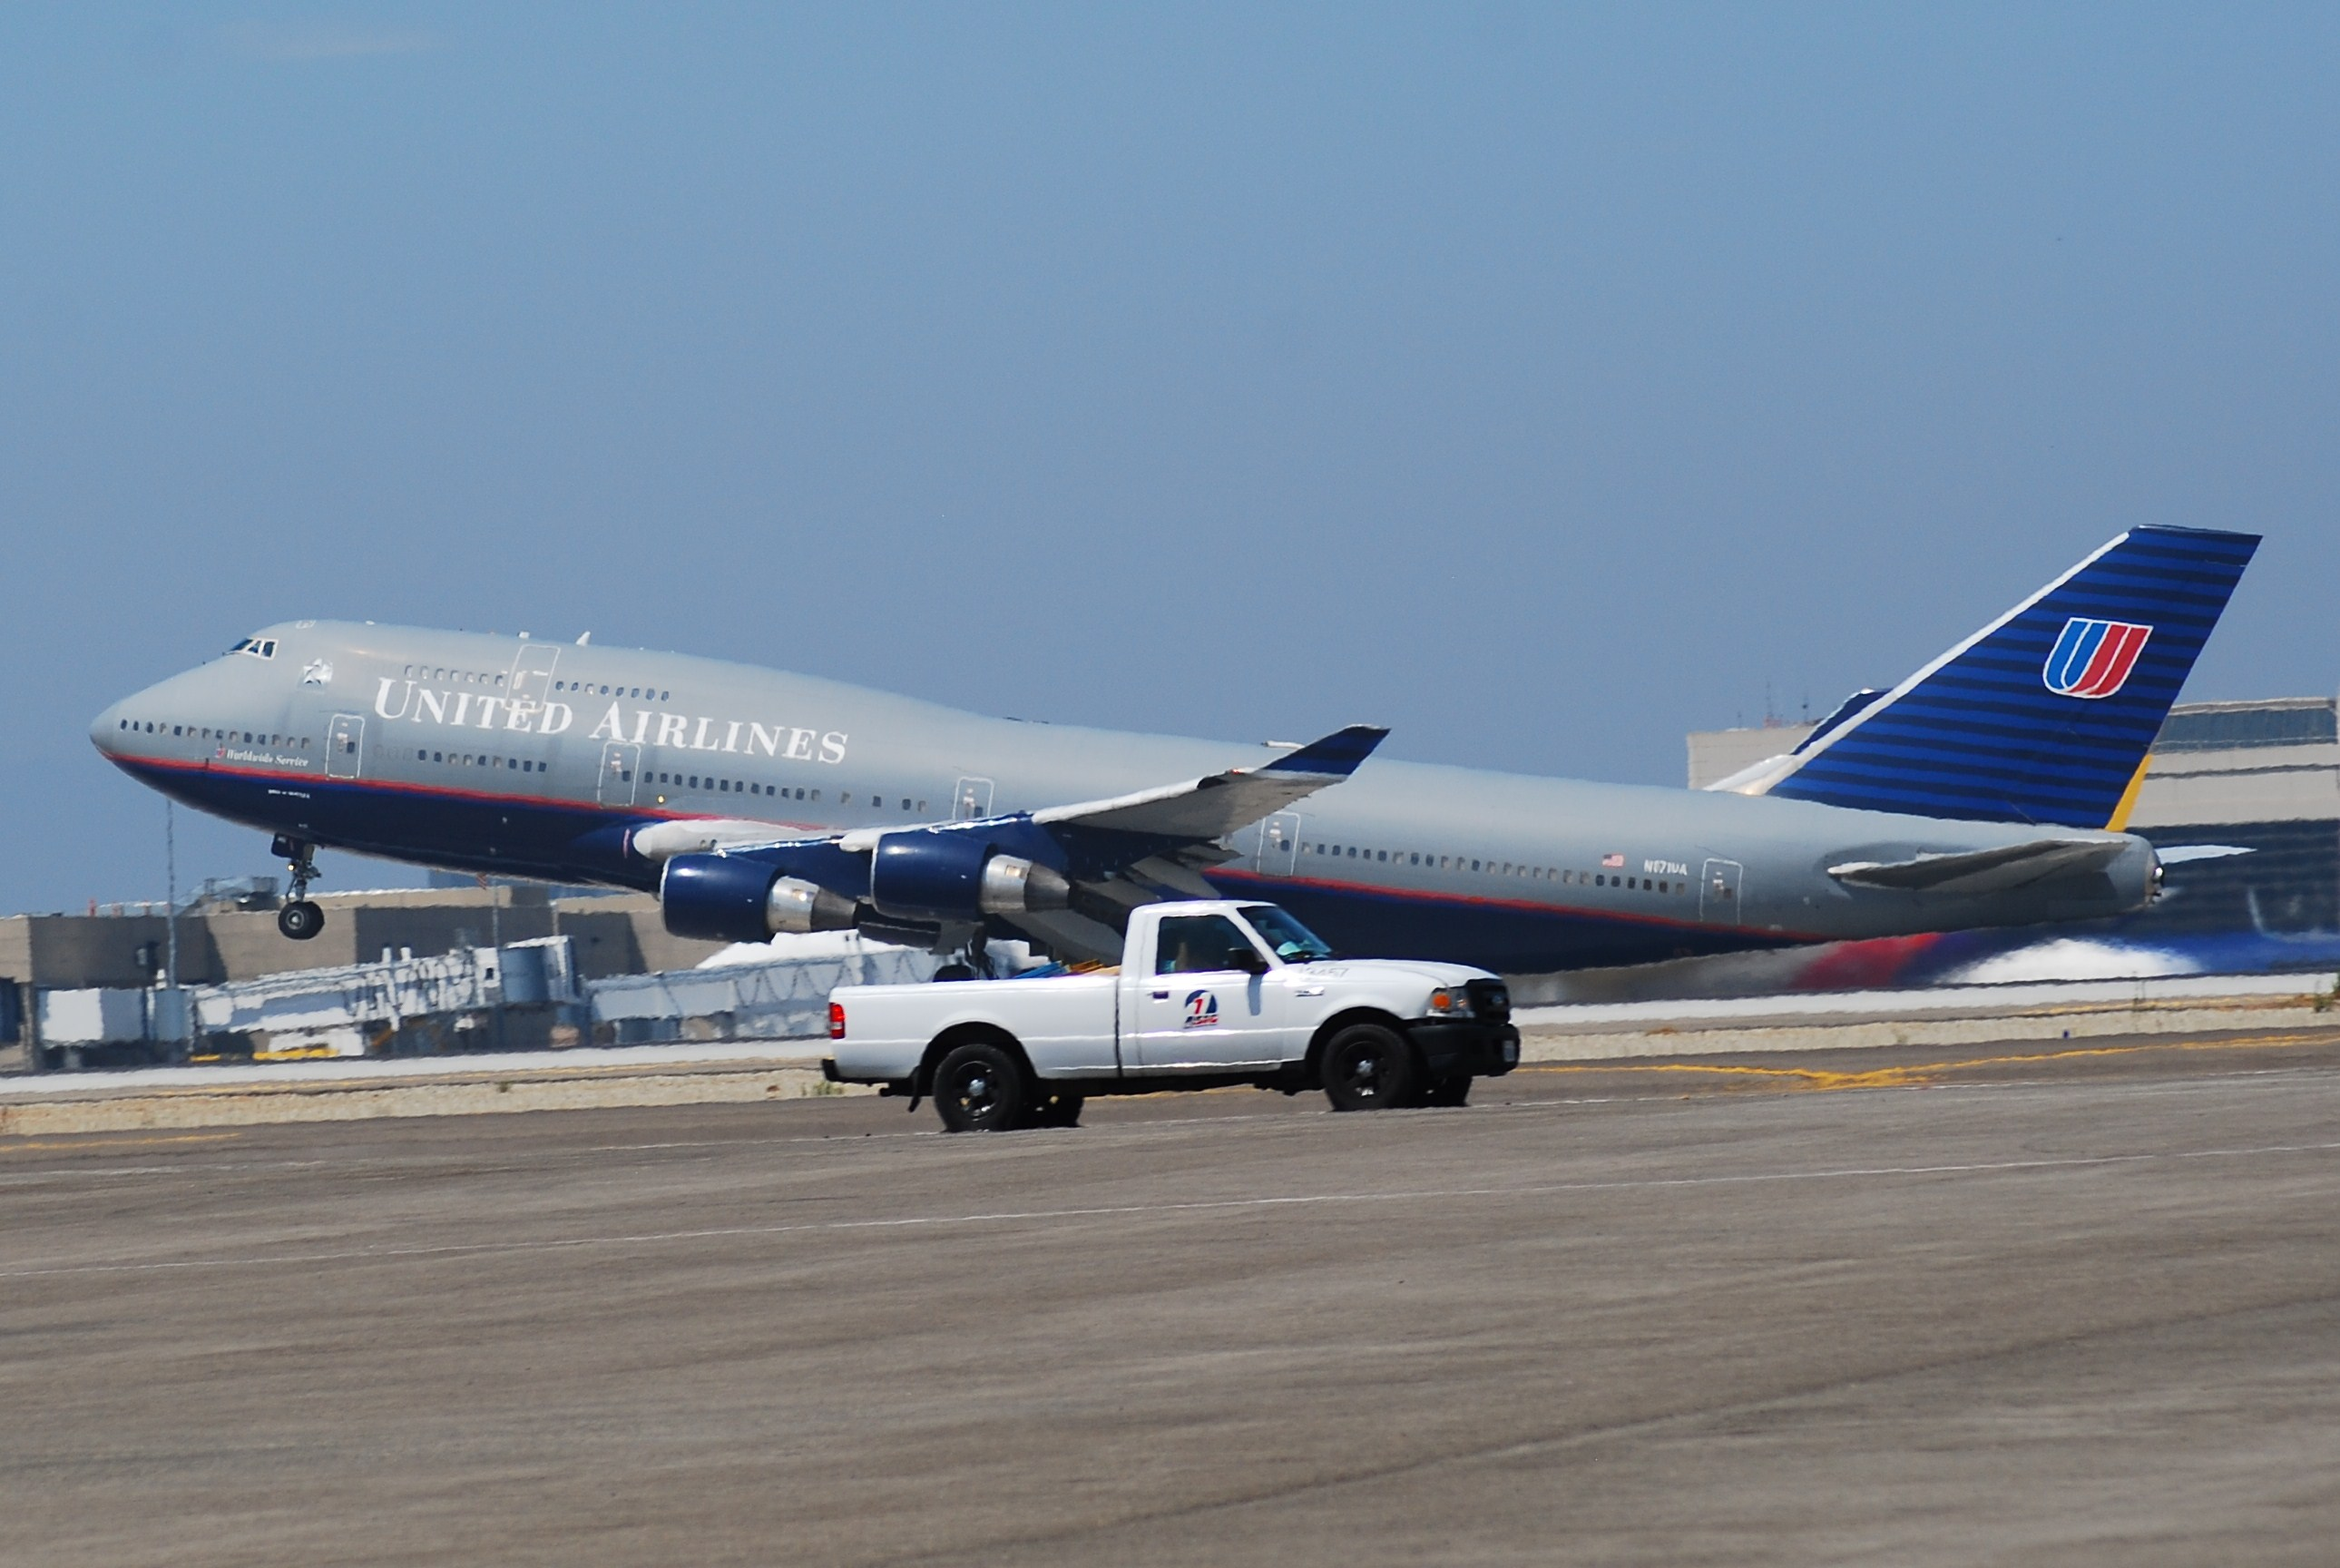 United Airlines: Final Journey for Boeing 747